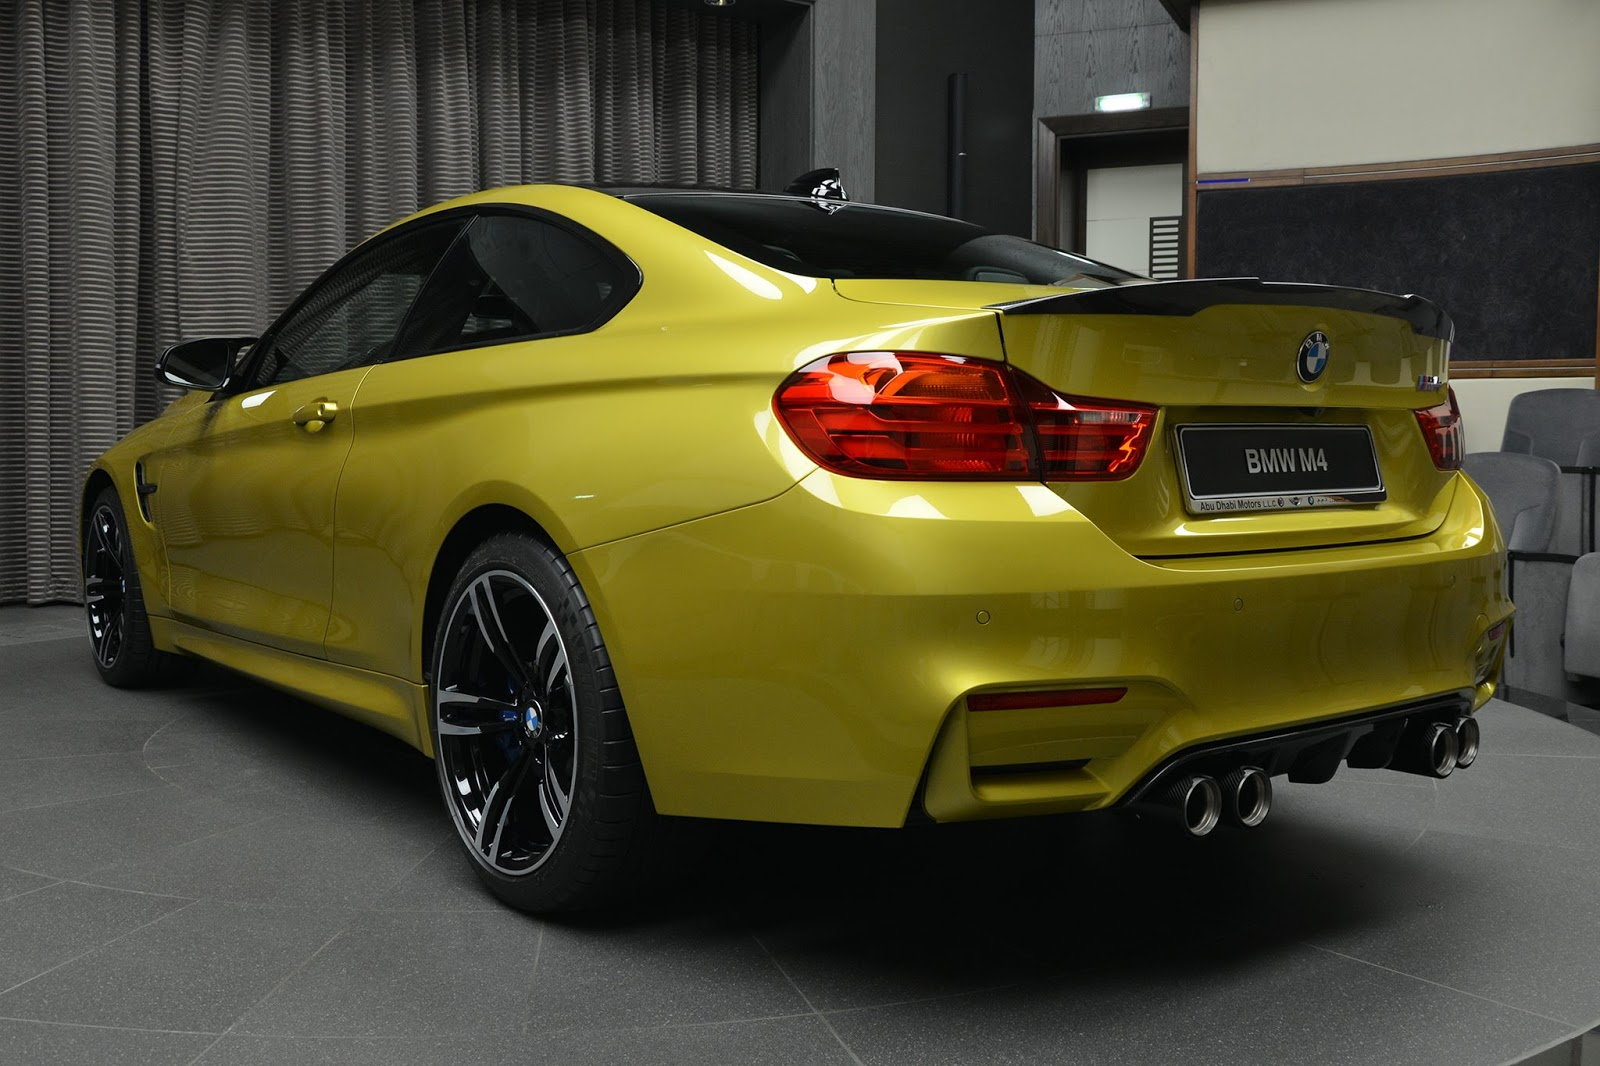 Austin Yellow F8 BMW M4 in Abu Dhabi (11)